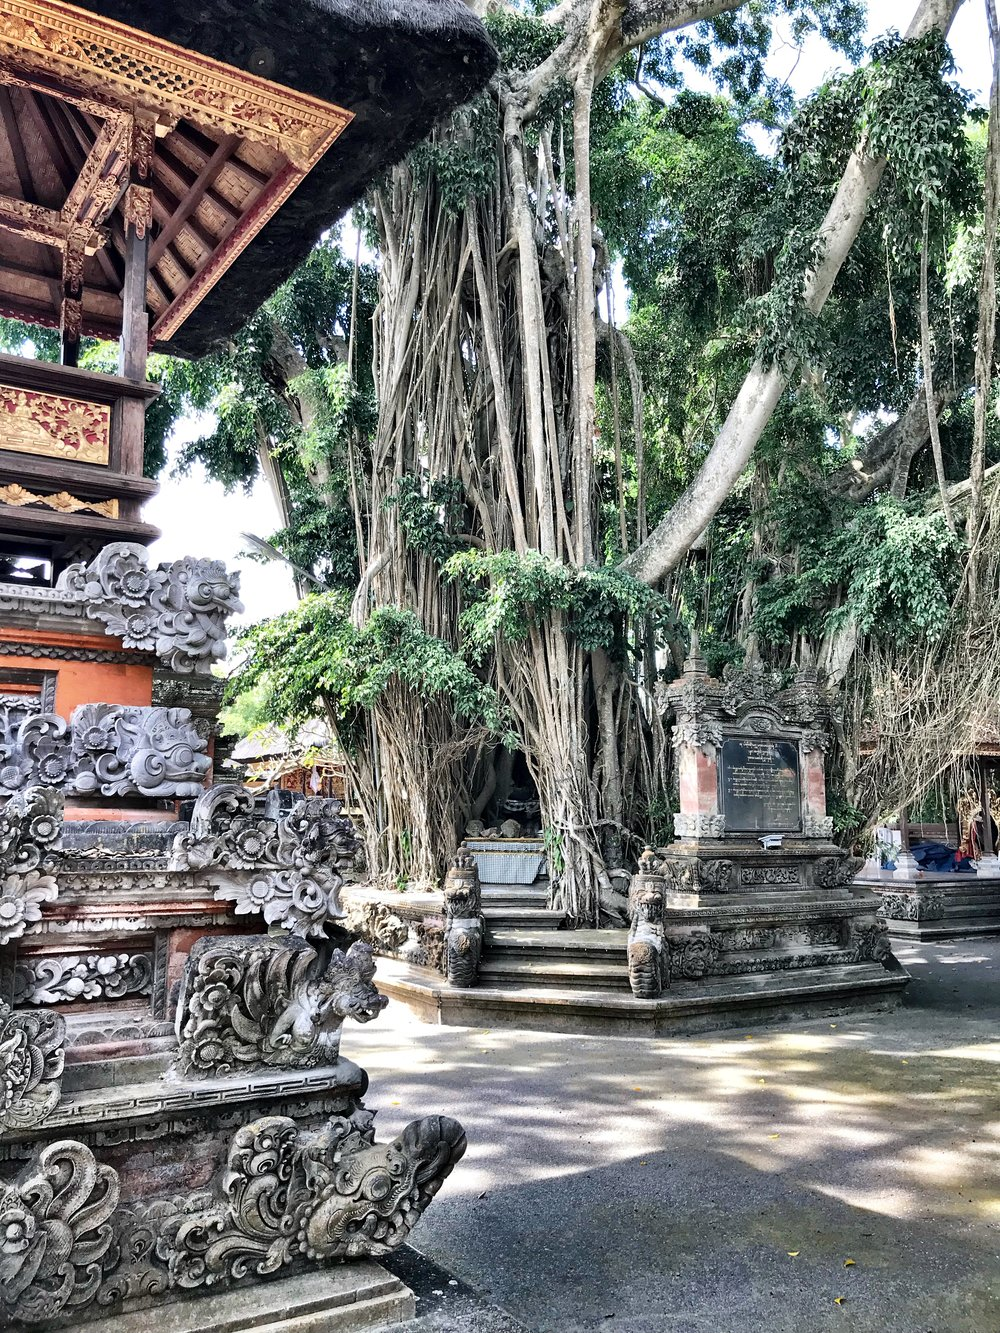 Banyan trees, with their roots that grow from above, are amazing works of nature